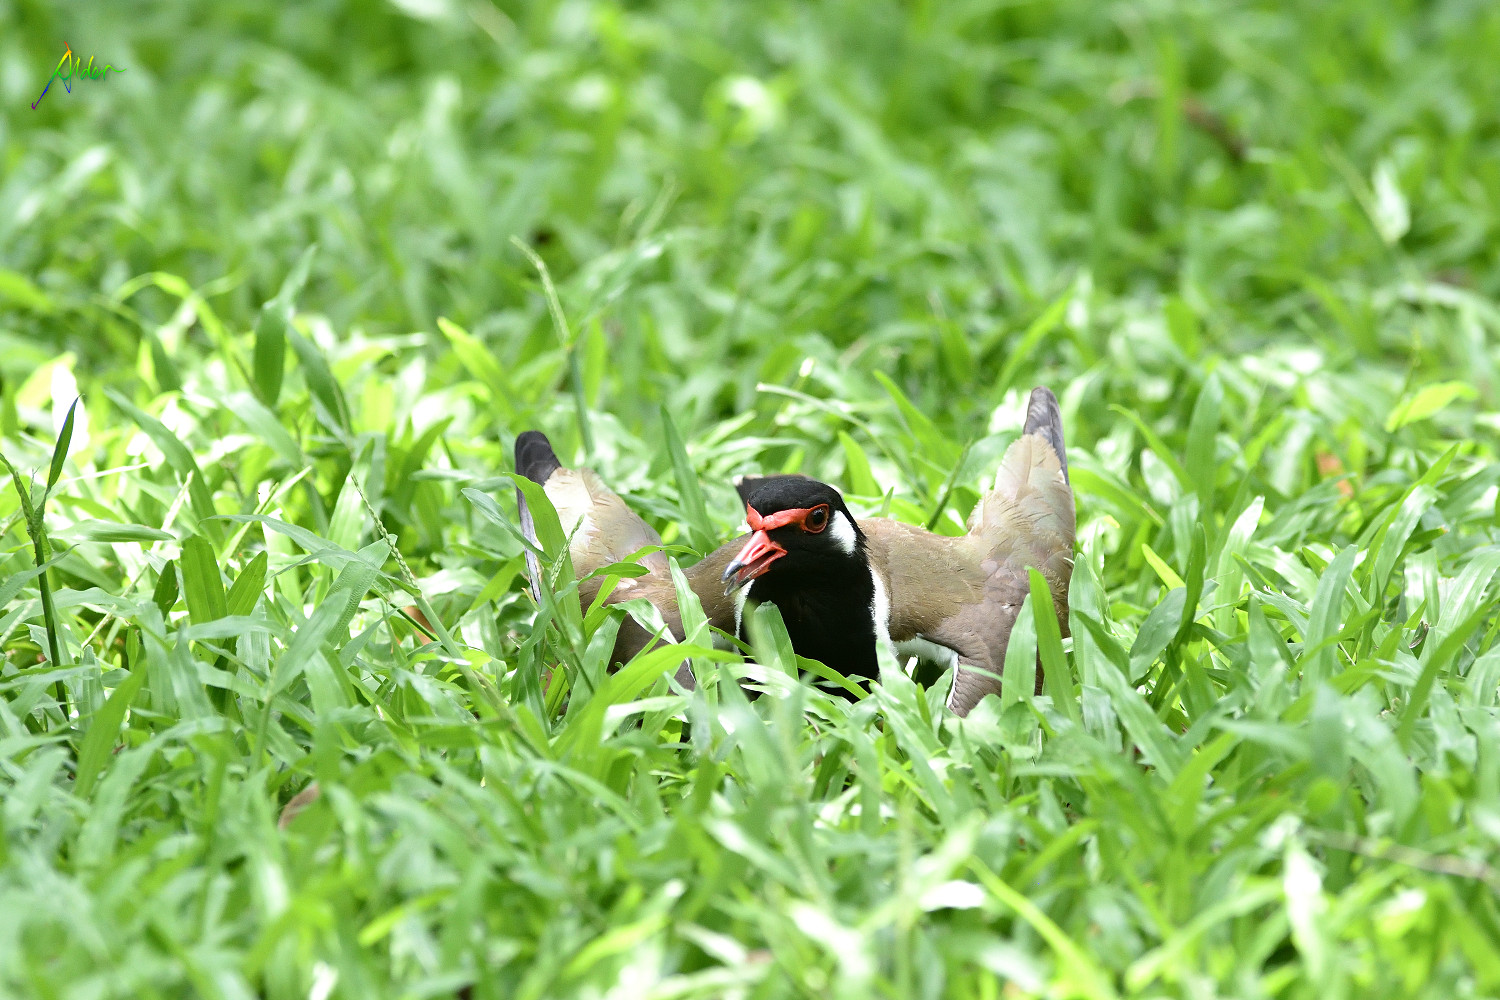 Red-wattled_Lapwing_1456